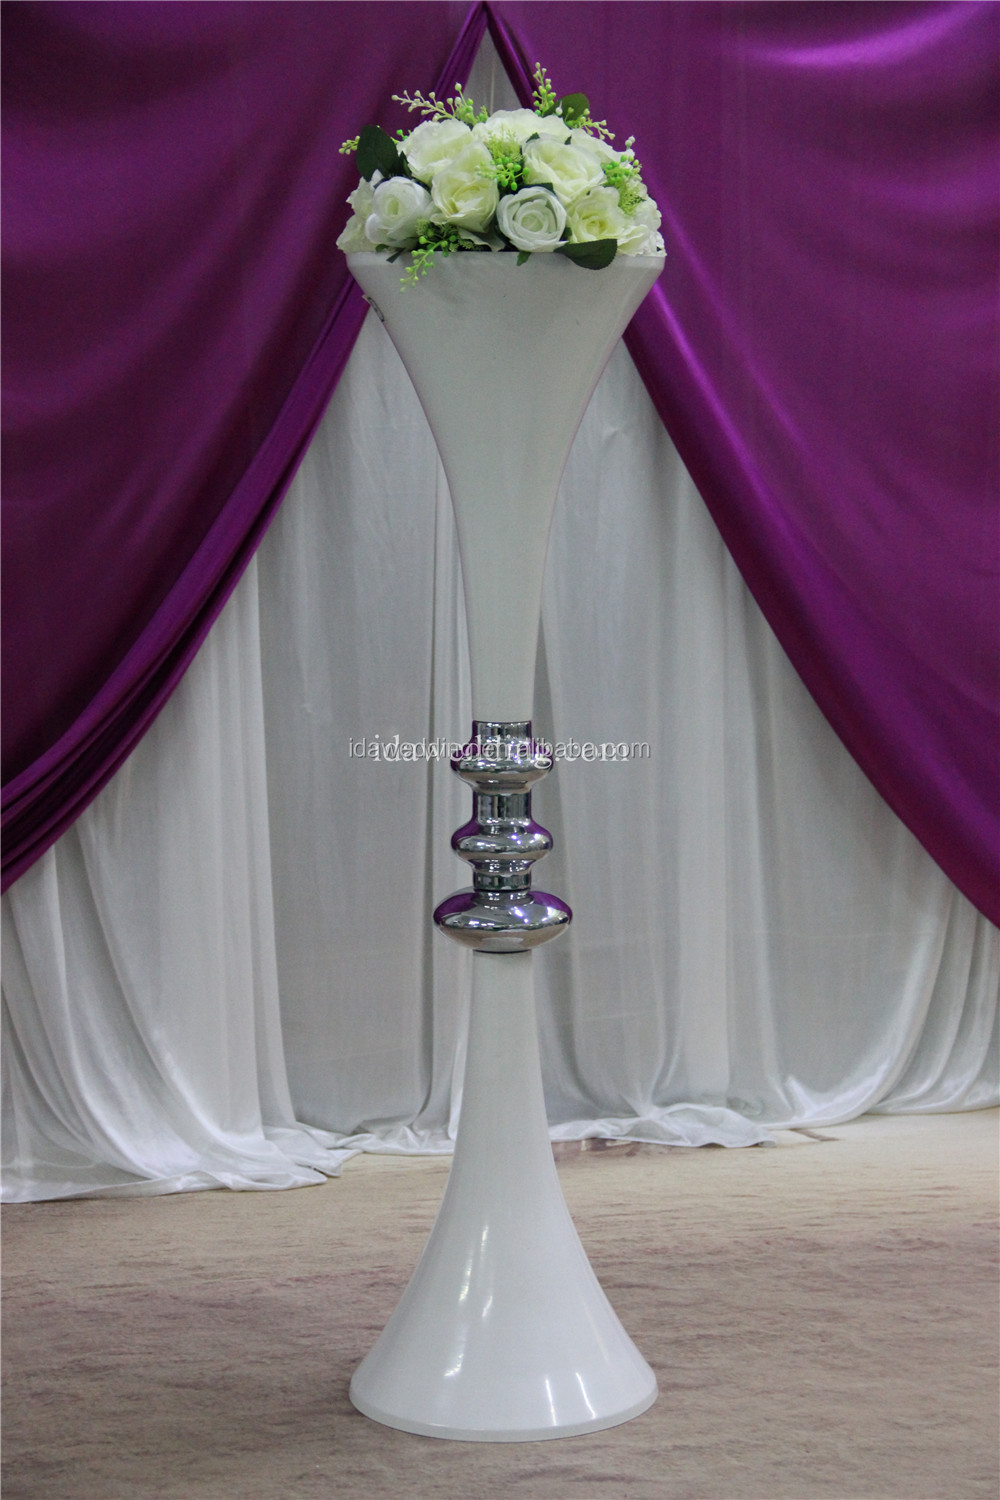 Detachable wedding decoration materials wedding vases for Buy wedding centerpieces